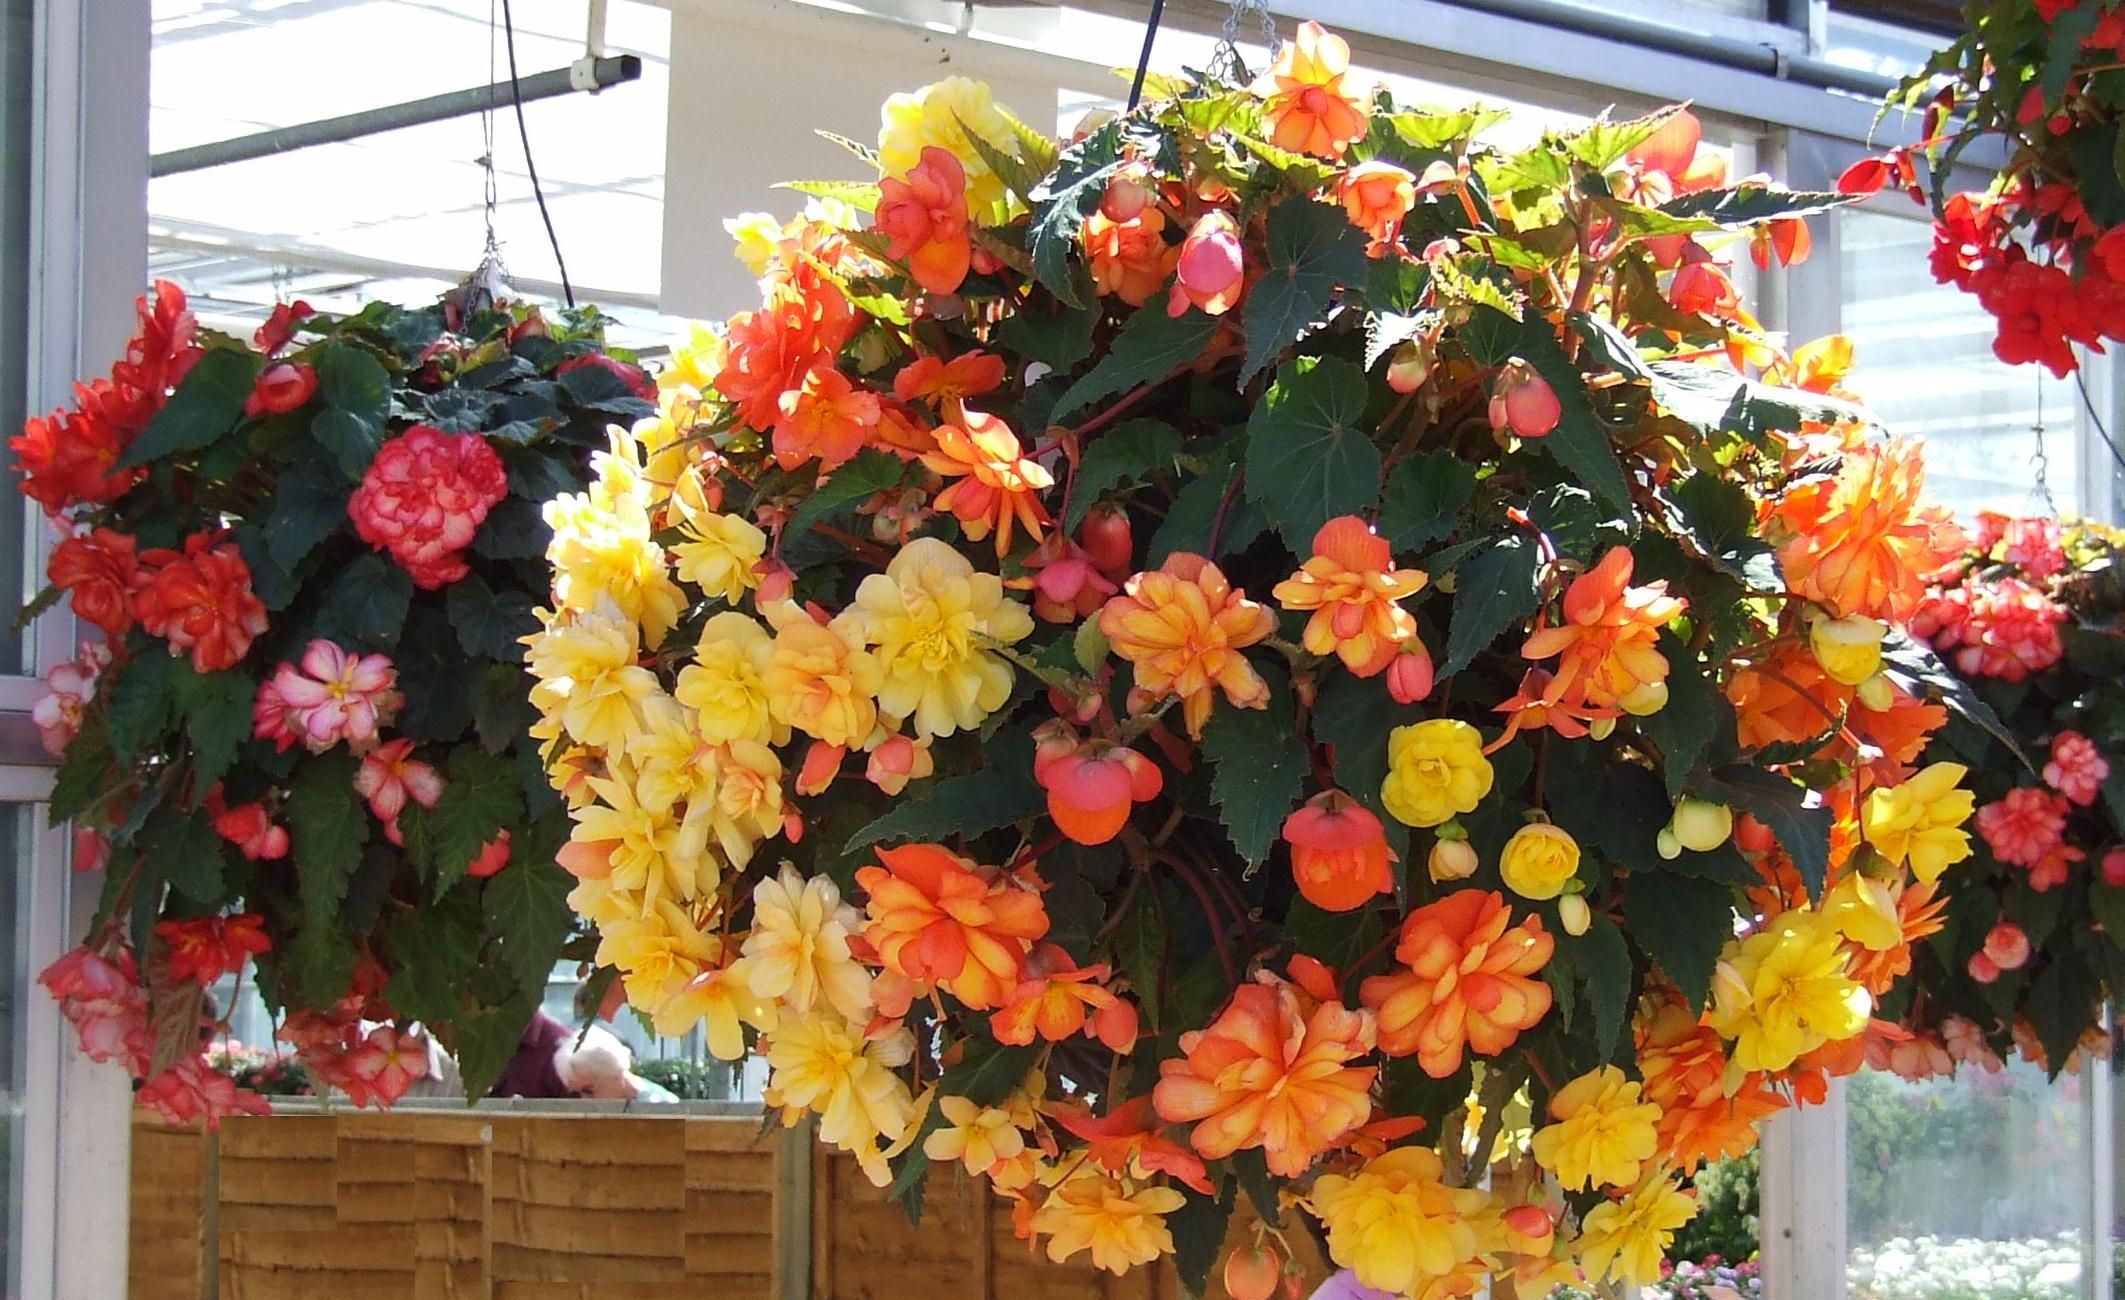 Hanging Baskets Made to Order